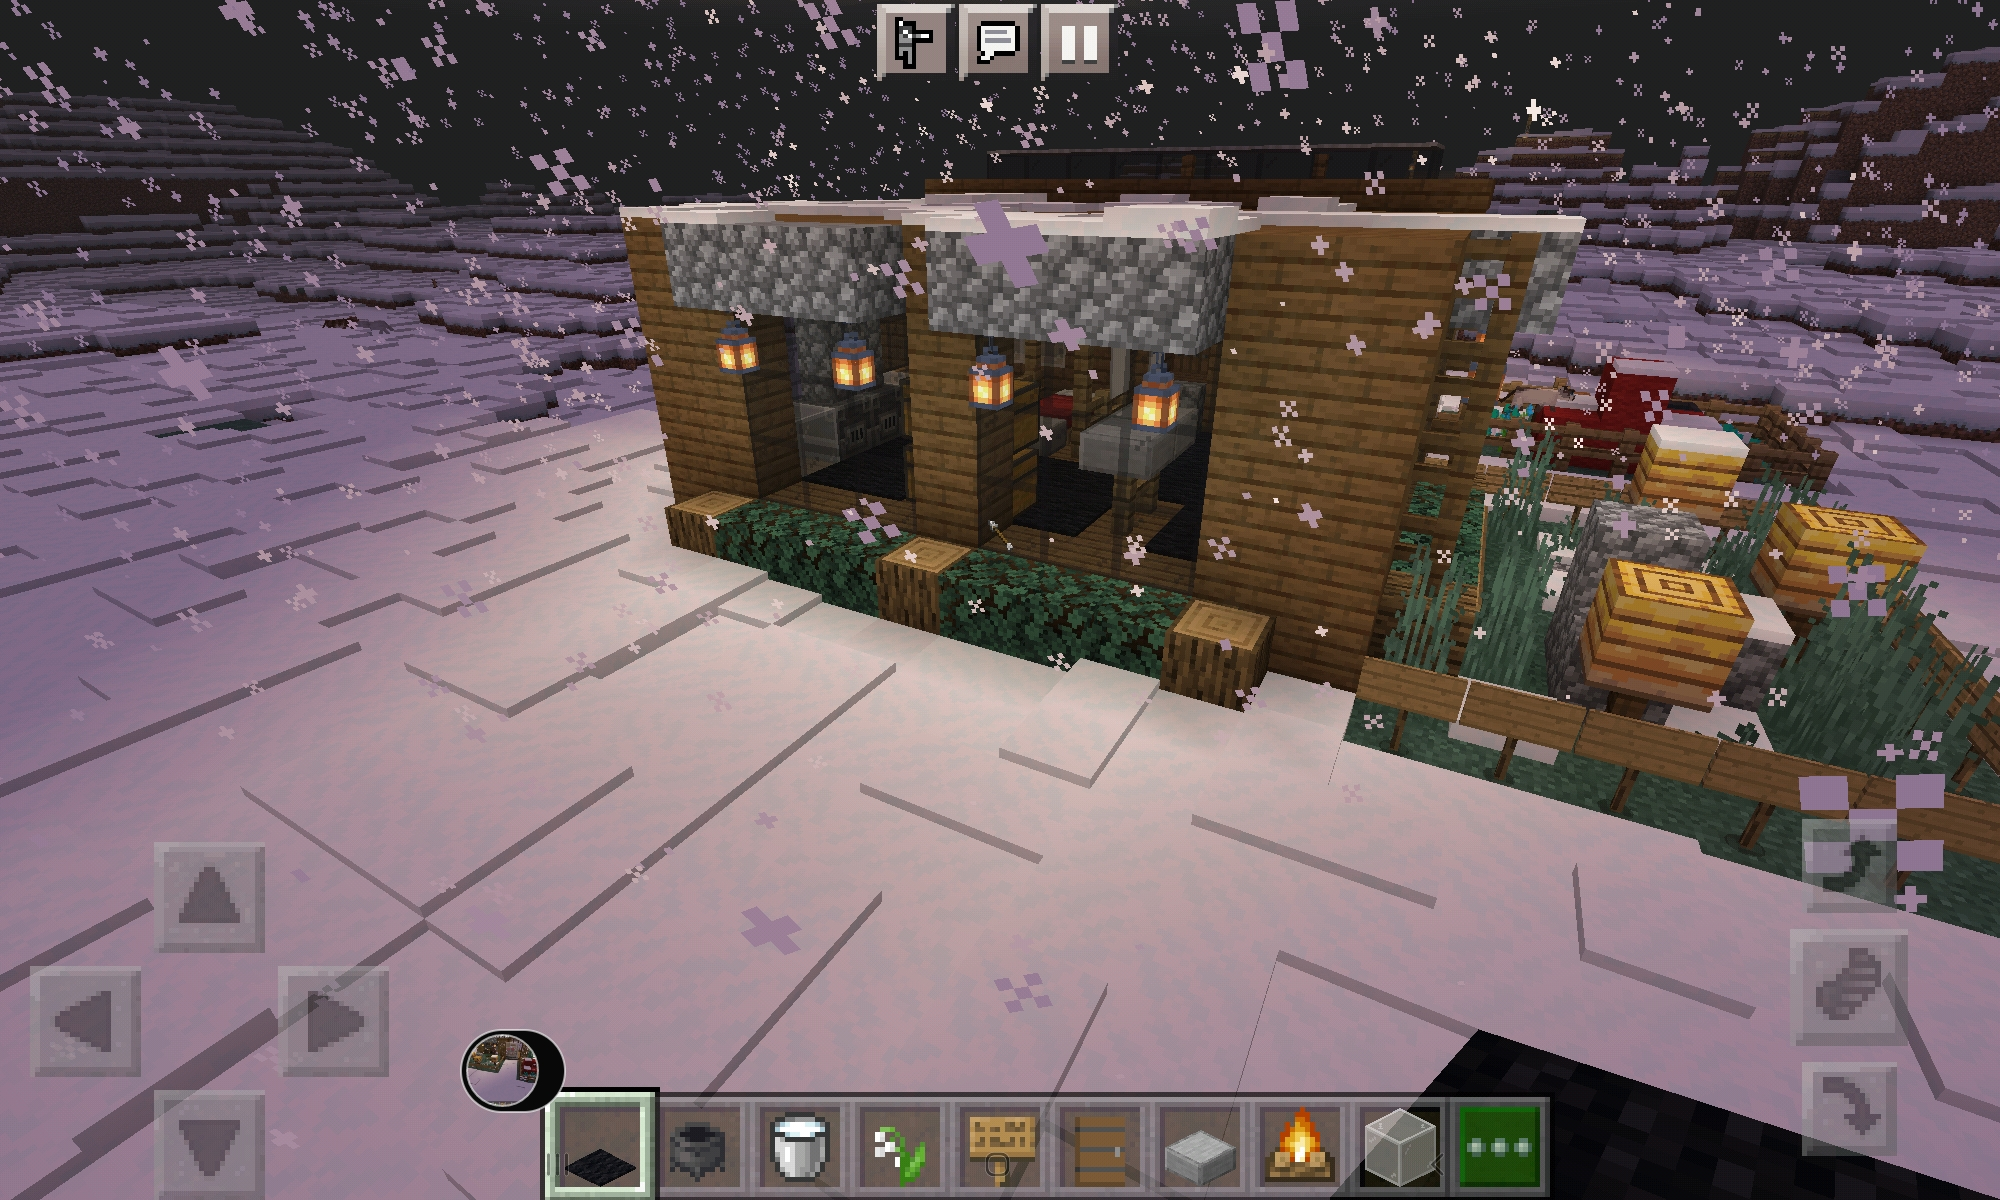 A small minecraft build of a modern cabin in the snow, featuring hanging lanterns and a small garden with bee hives.